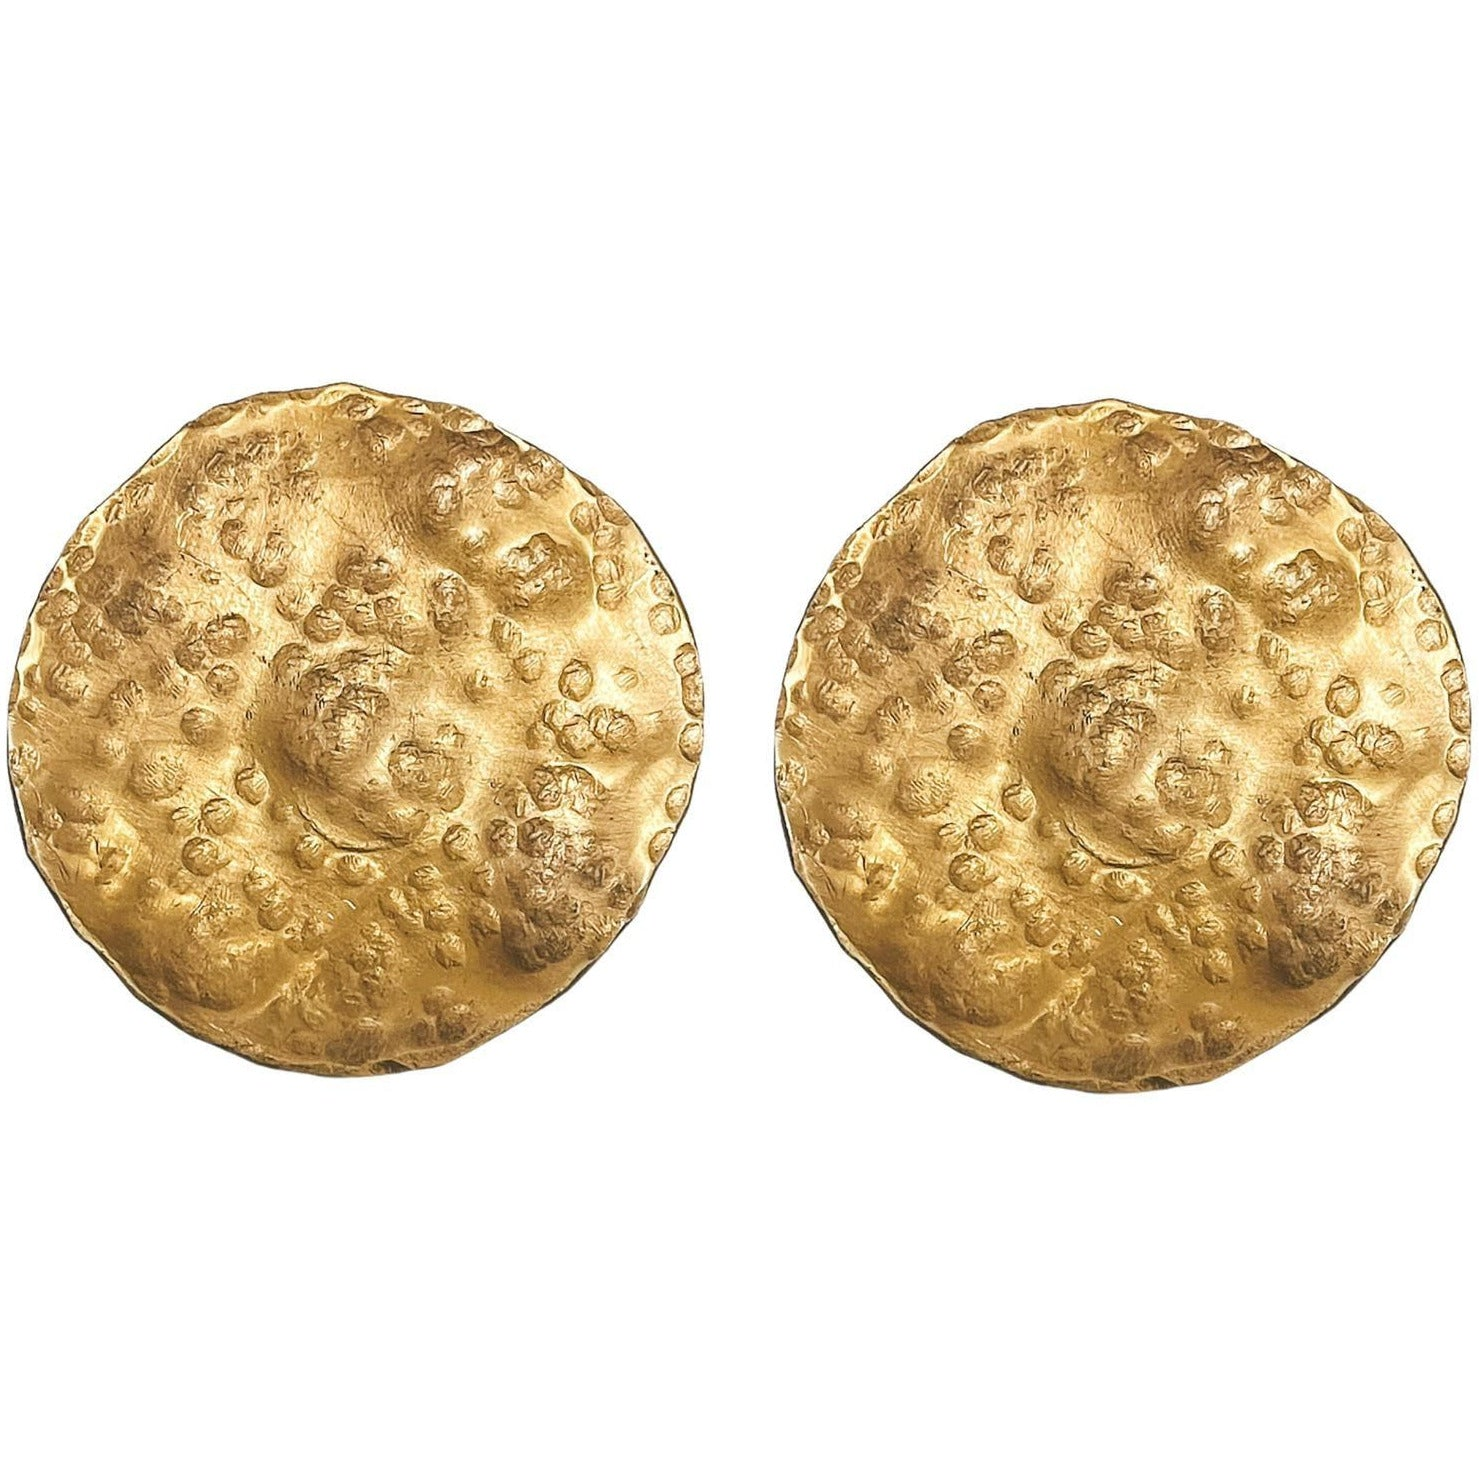 LARGE Luna Full Moon Discs 24K gold plating over 925 Recycled Silver Earrings, Made to order, 10 days lead time - natoorio